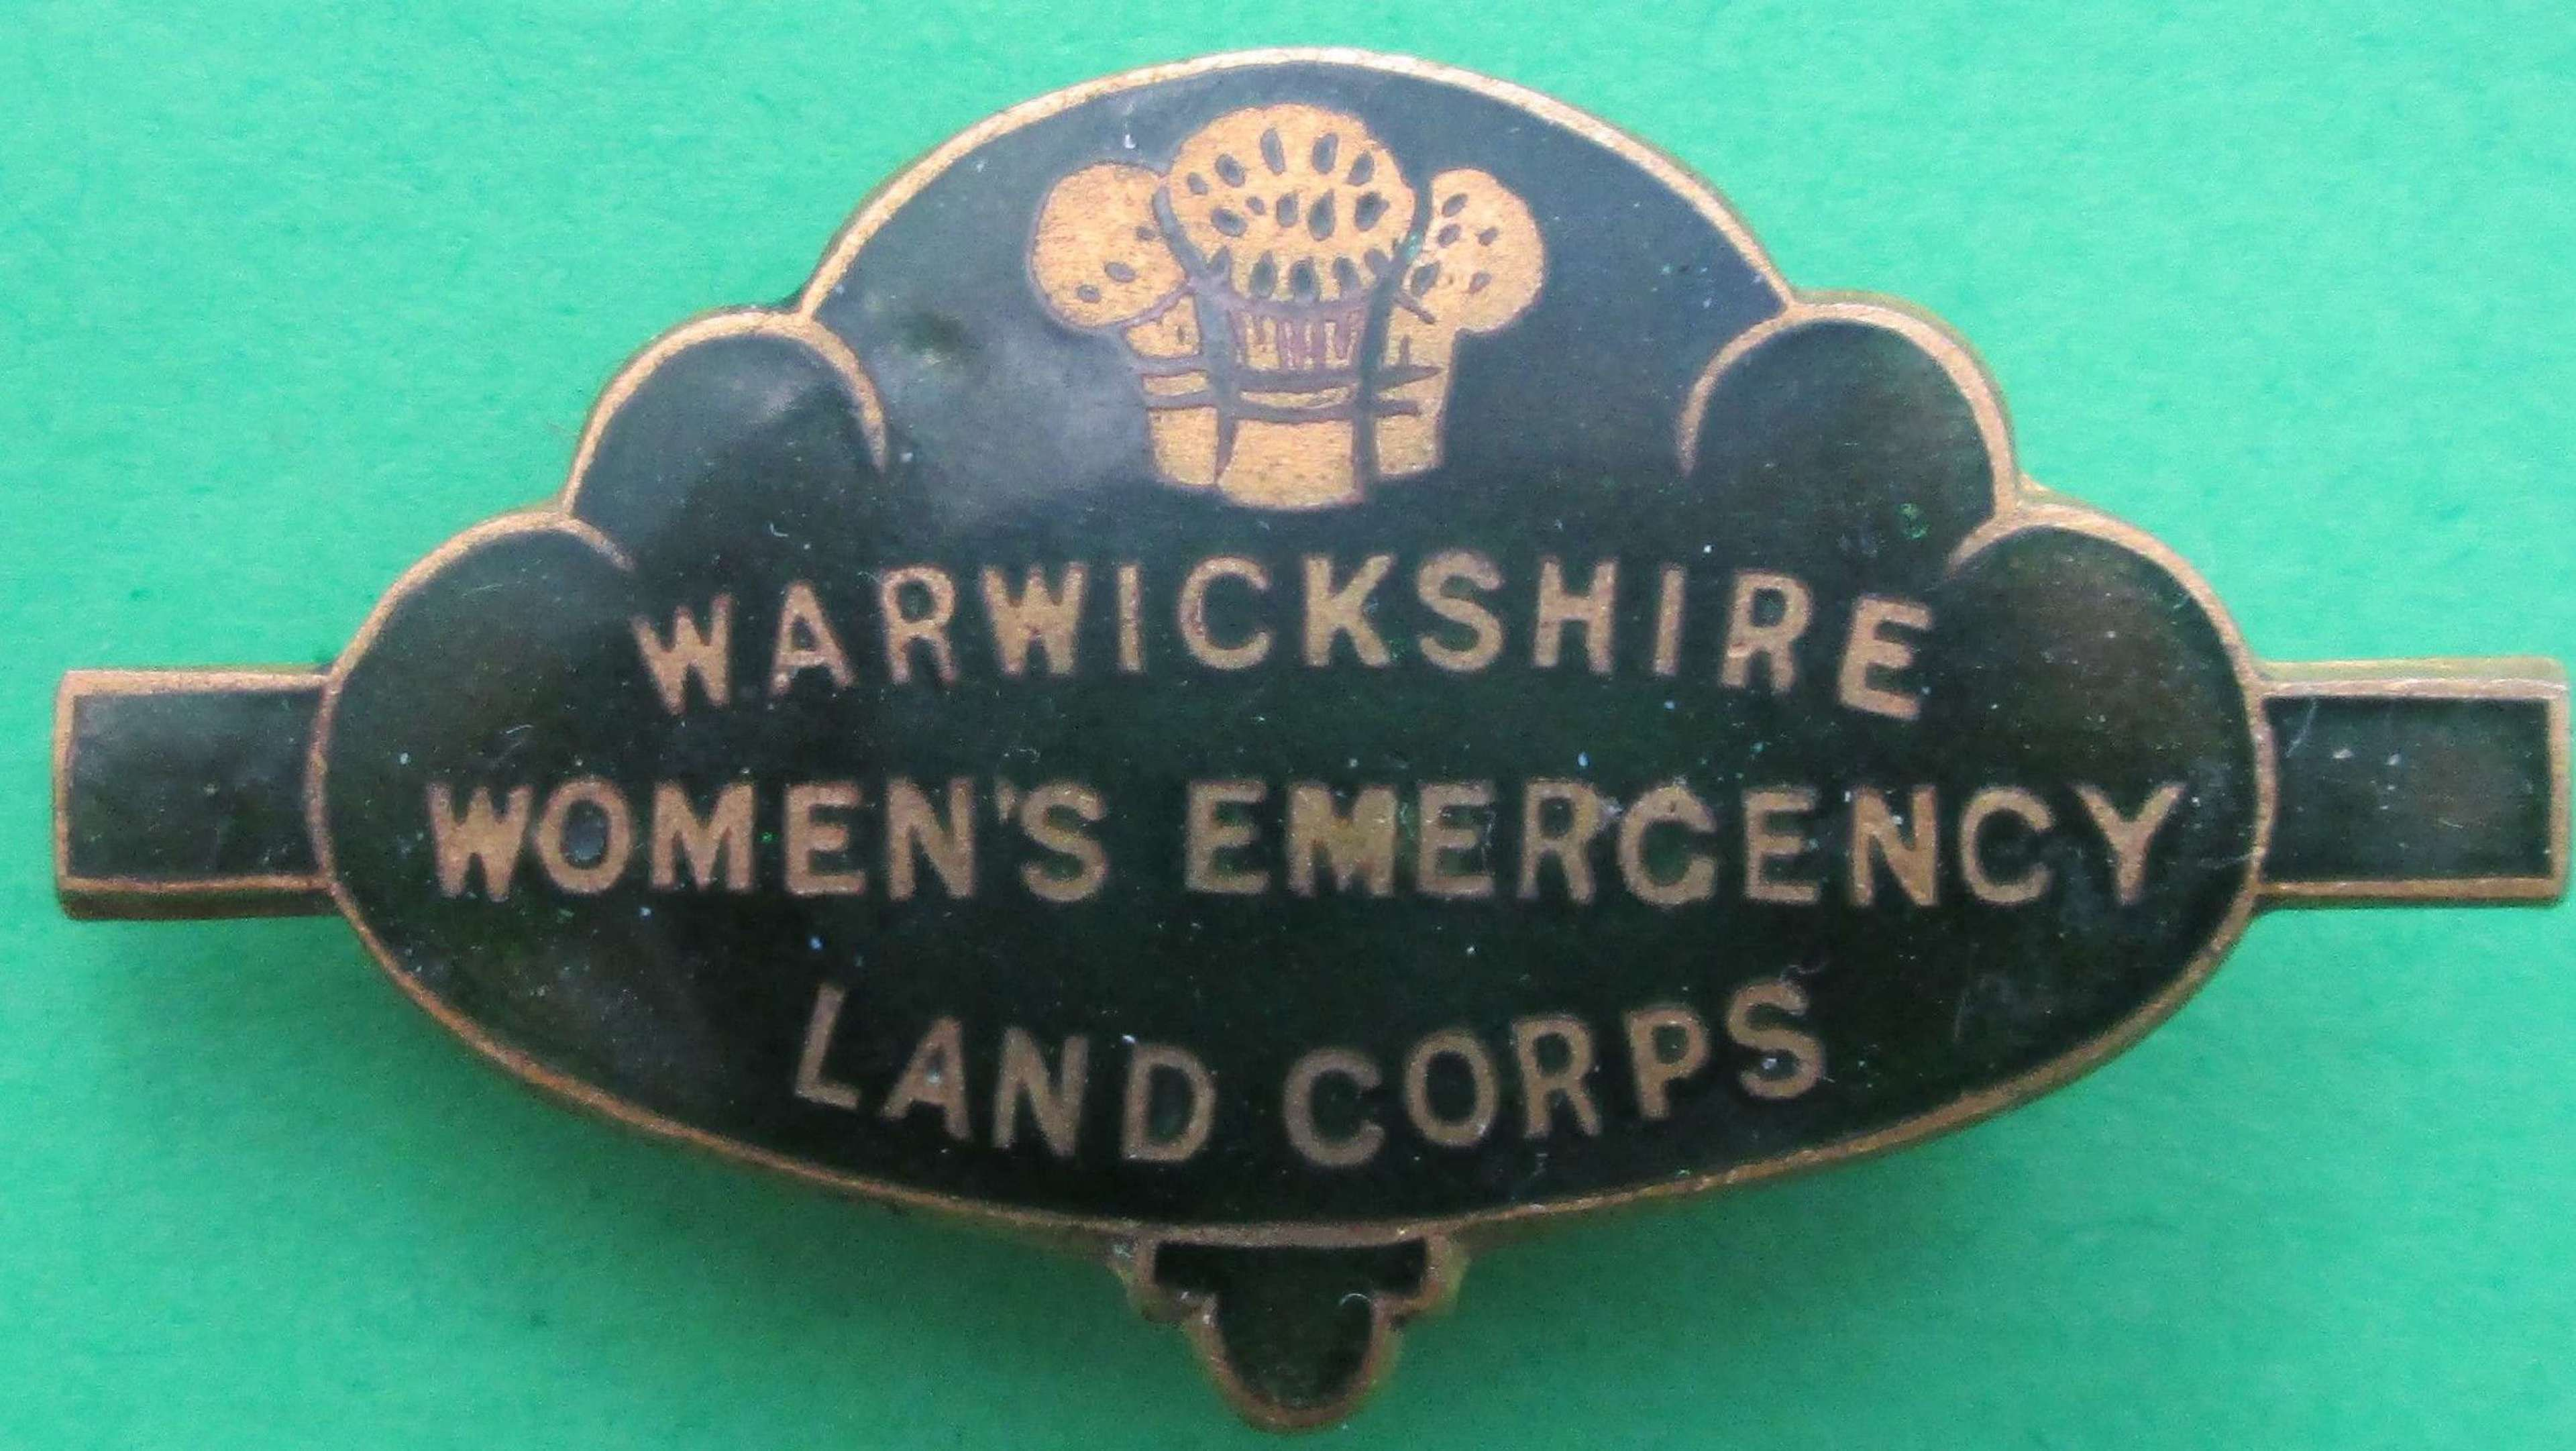 A WWII WARWICKSHIRE WOMENS EMERGENCY LAND CORPS PIN BADGE